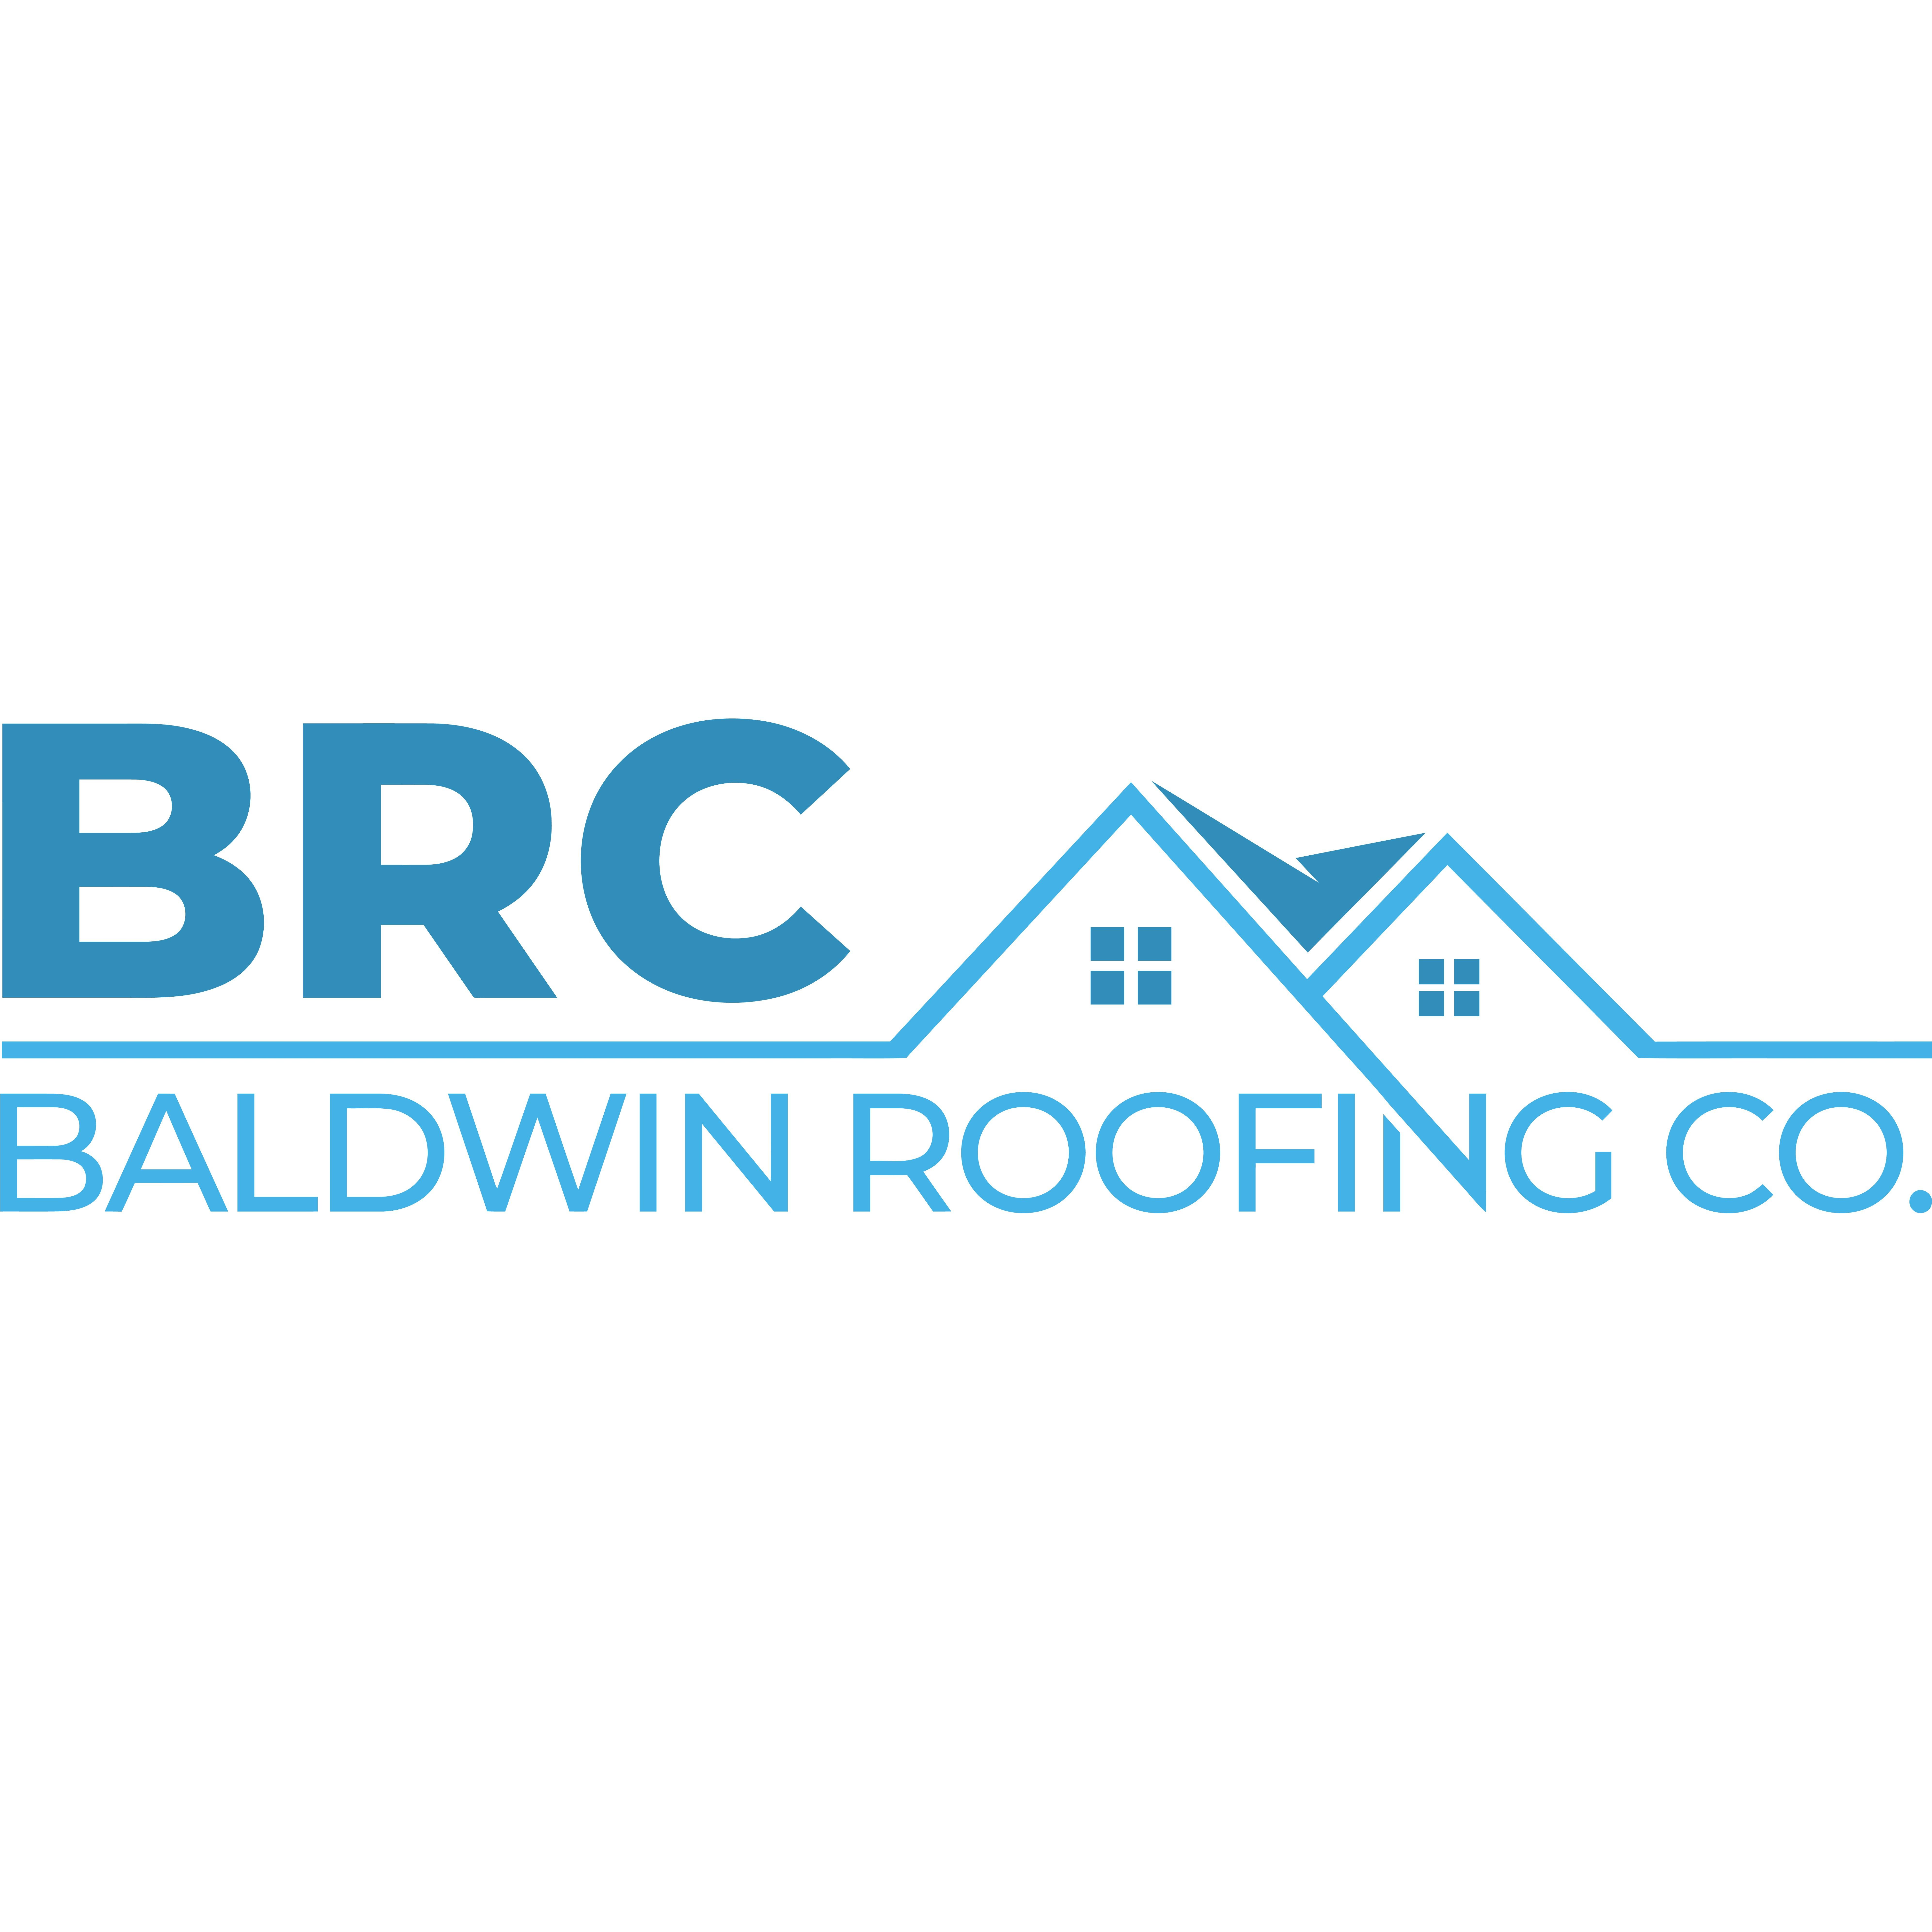 Baldwin Roofing Company - Jacksonville, FL 32256 - (904)372-1065 | ShowMeLocal.com